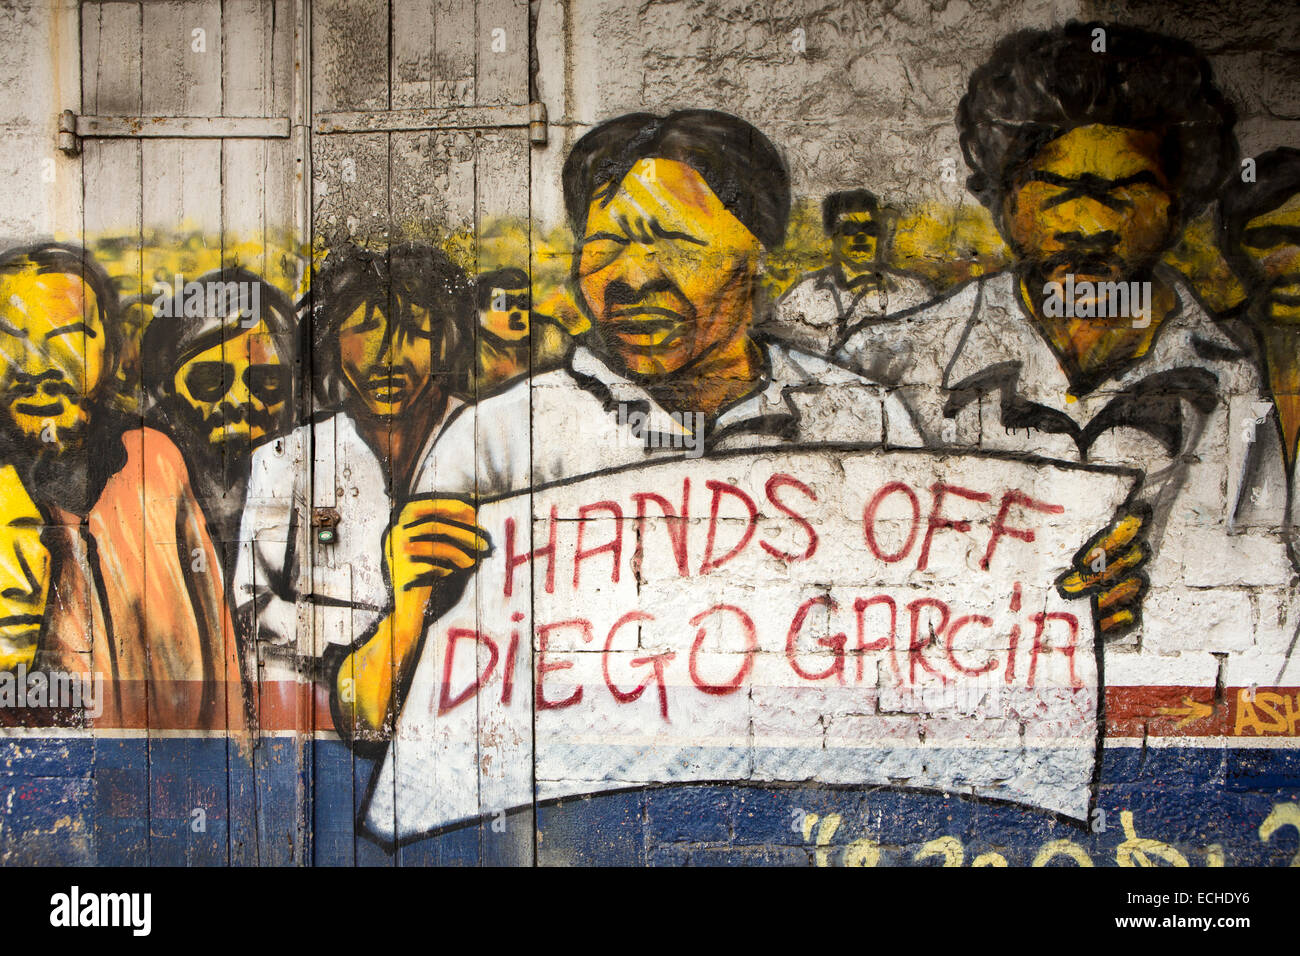 Mauritius, Mahebourg, politics, Chagos Islanders, hands off Diego Garcia protest mural on house wall - Stock Image